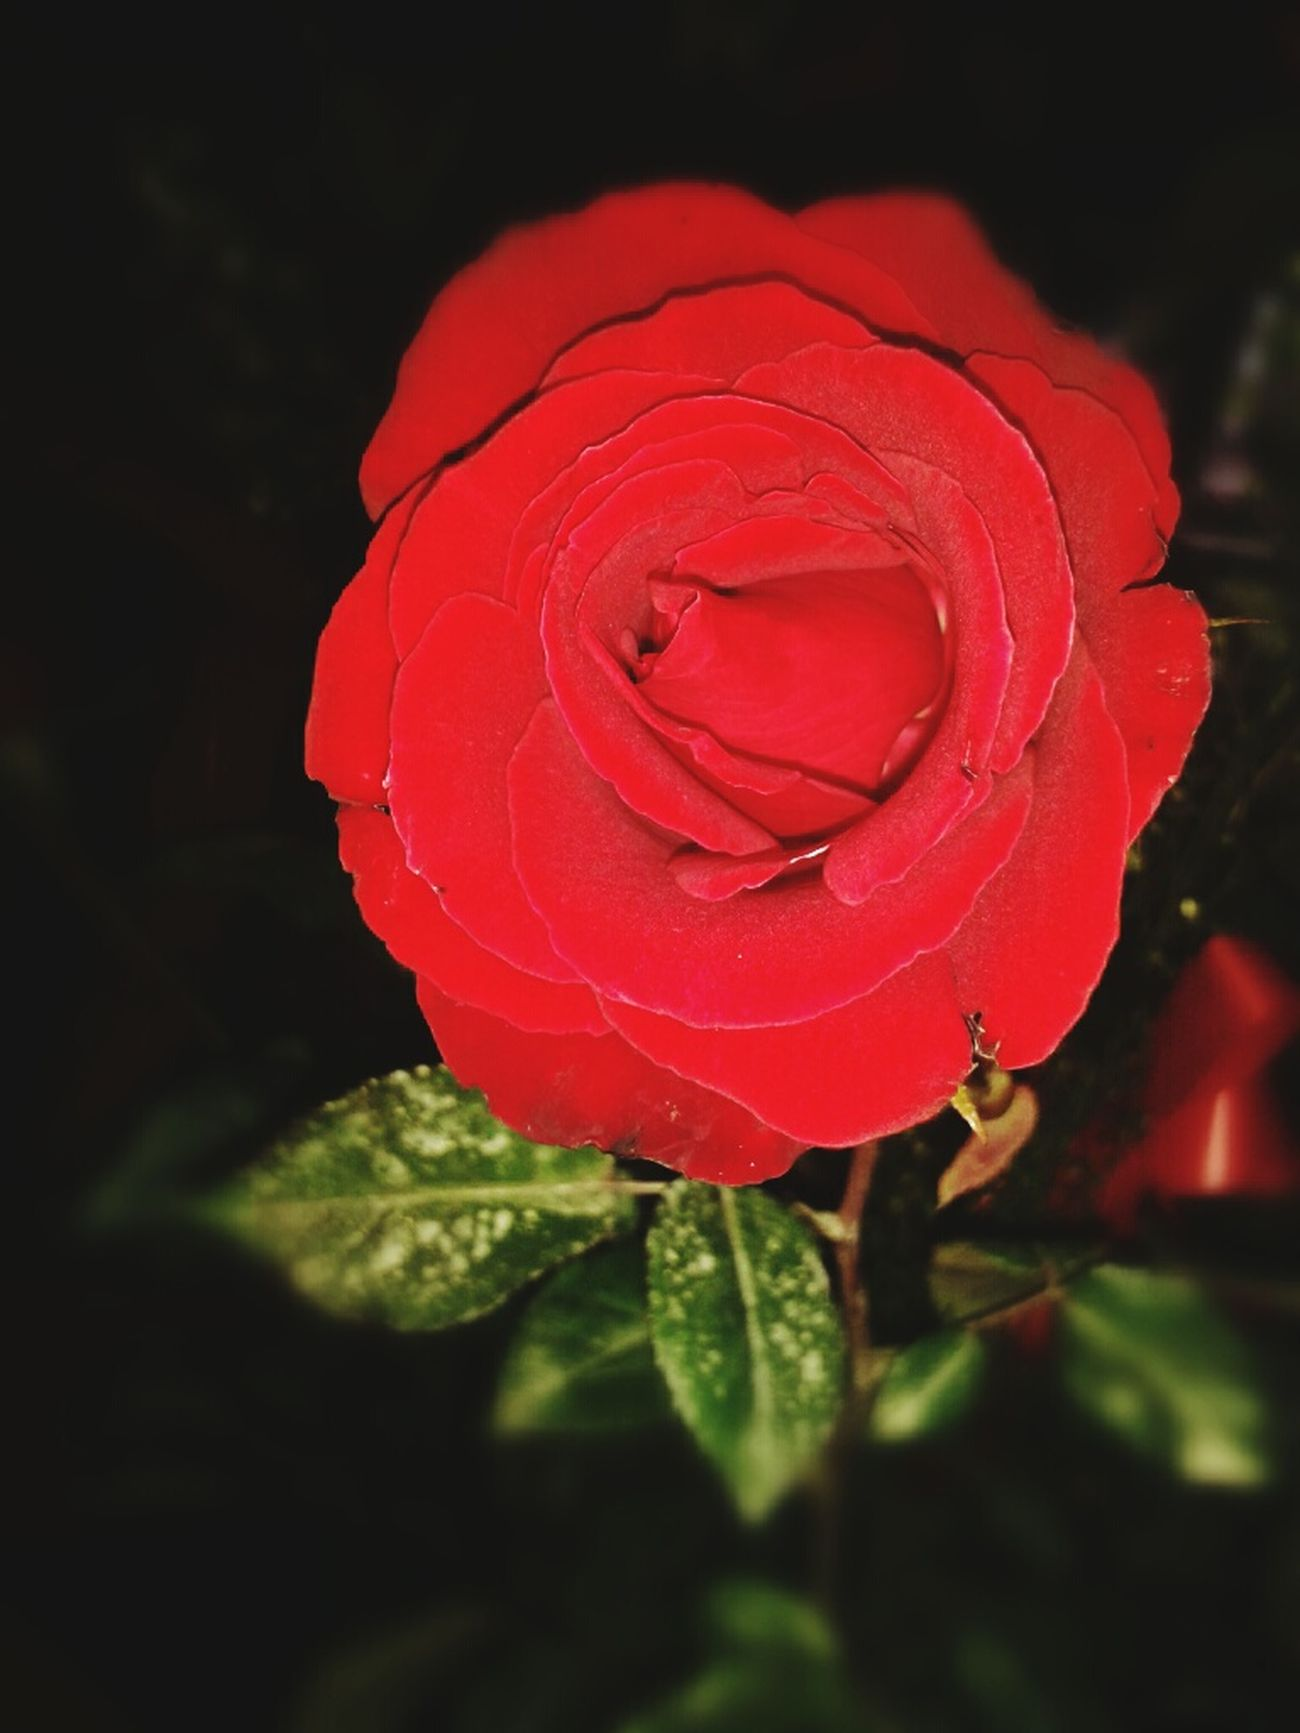 Red rose for the month of February ♥